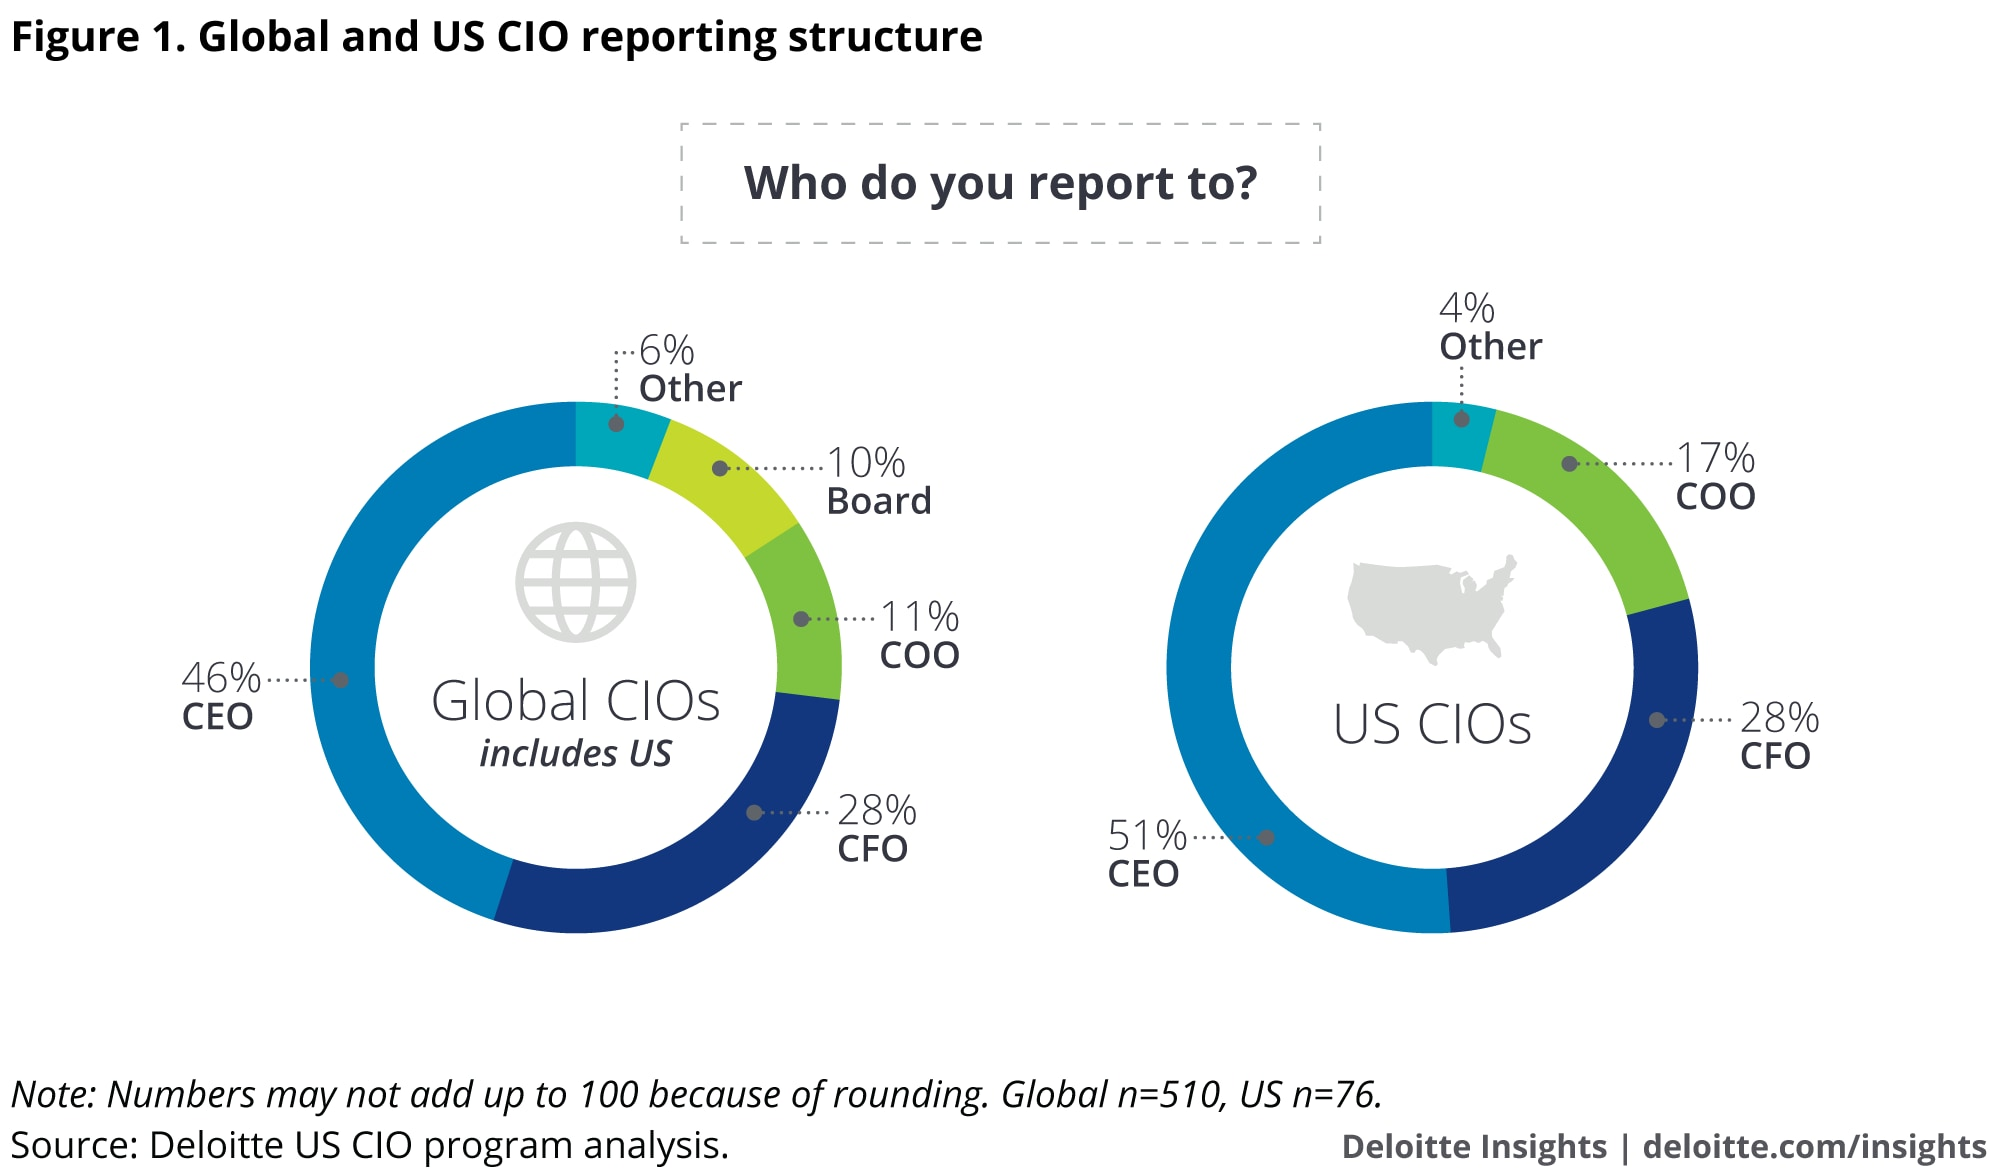 Global and US CIO reporting structure